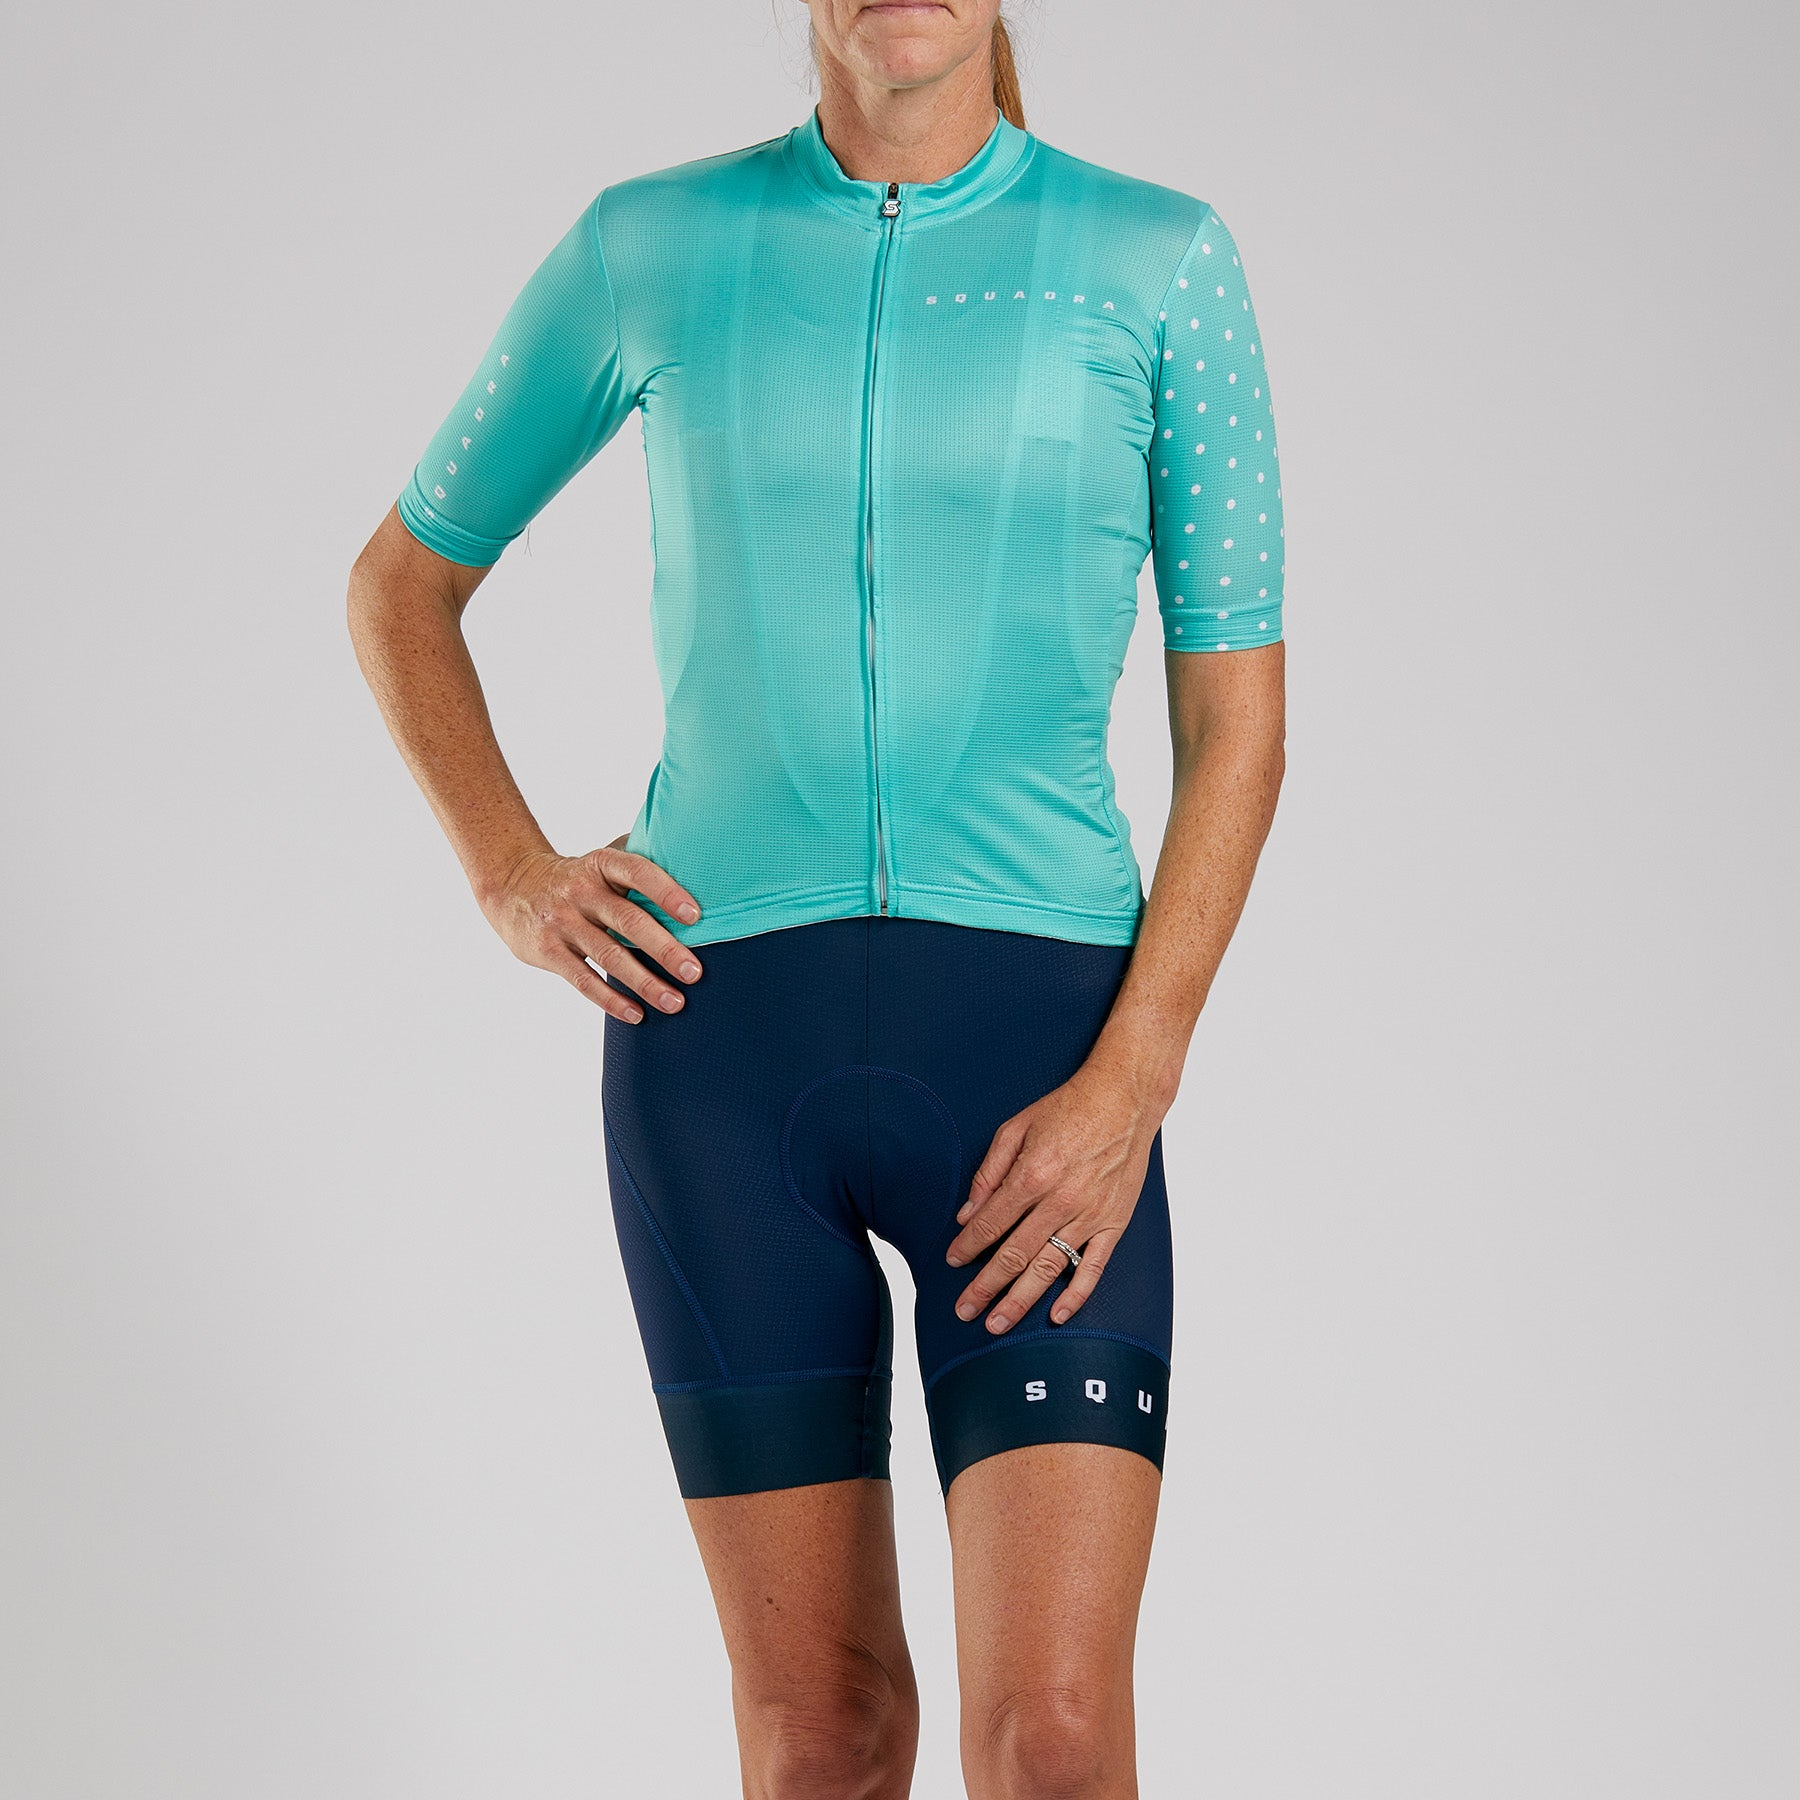 WOMENS PRO ISSUE AERO JERSEY - MENTA